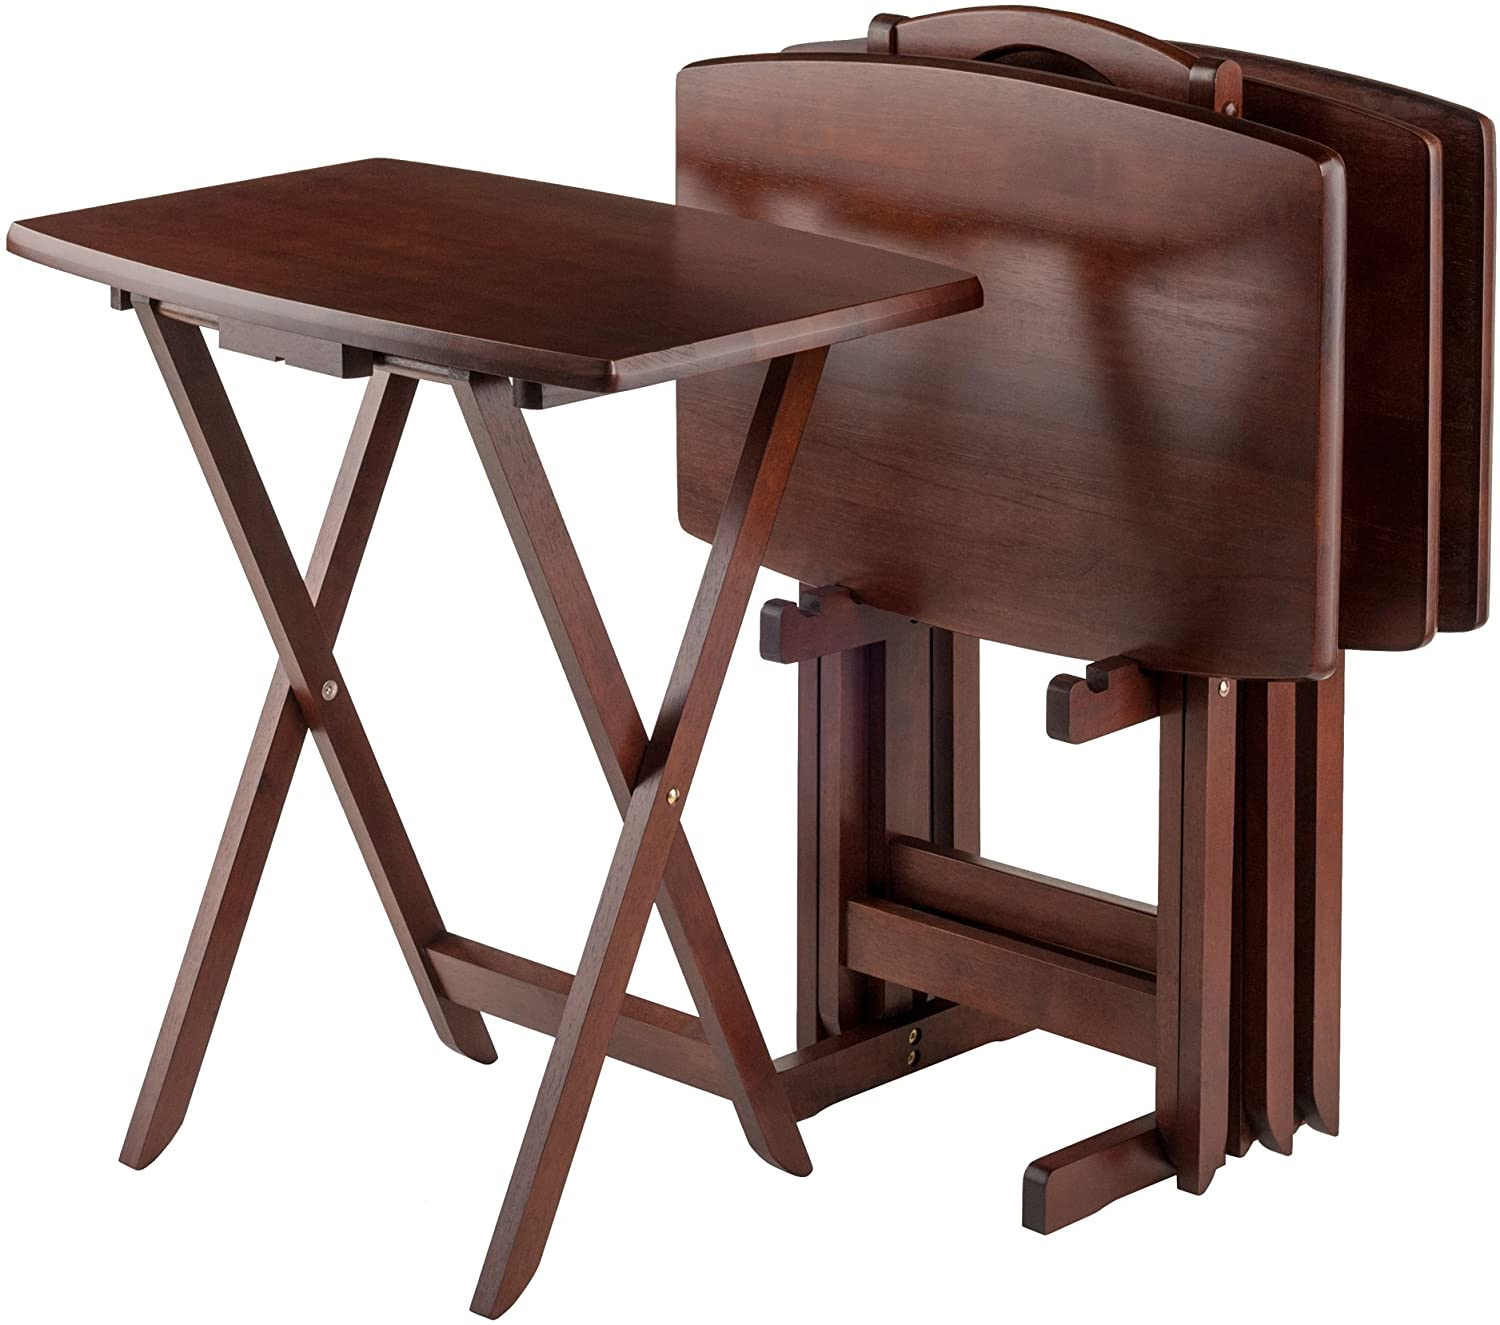 Contemporary Home Living Set of 4 Rich Walnut Oversize Folding Snack Table 25.5